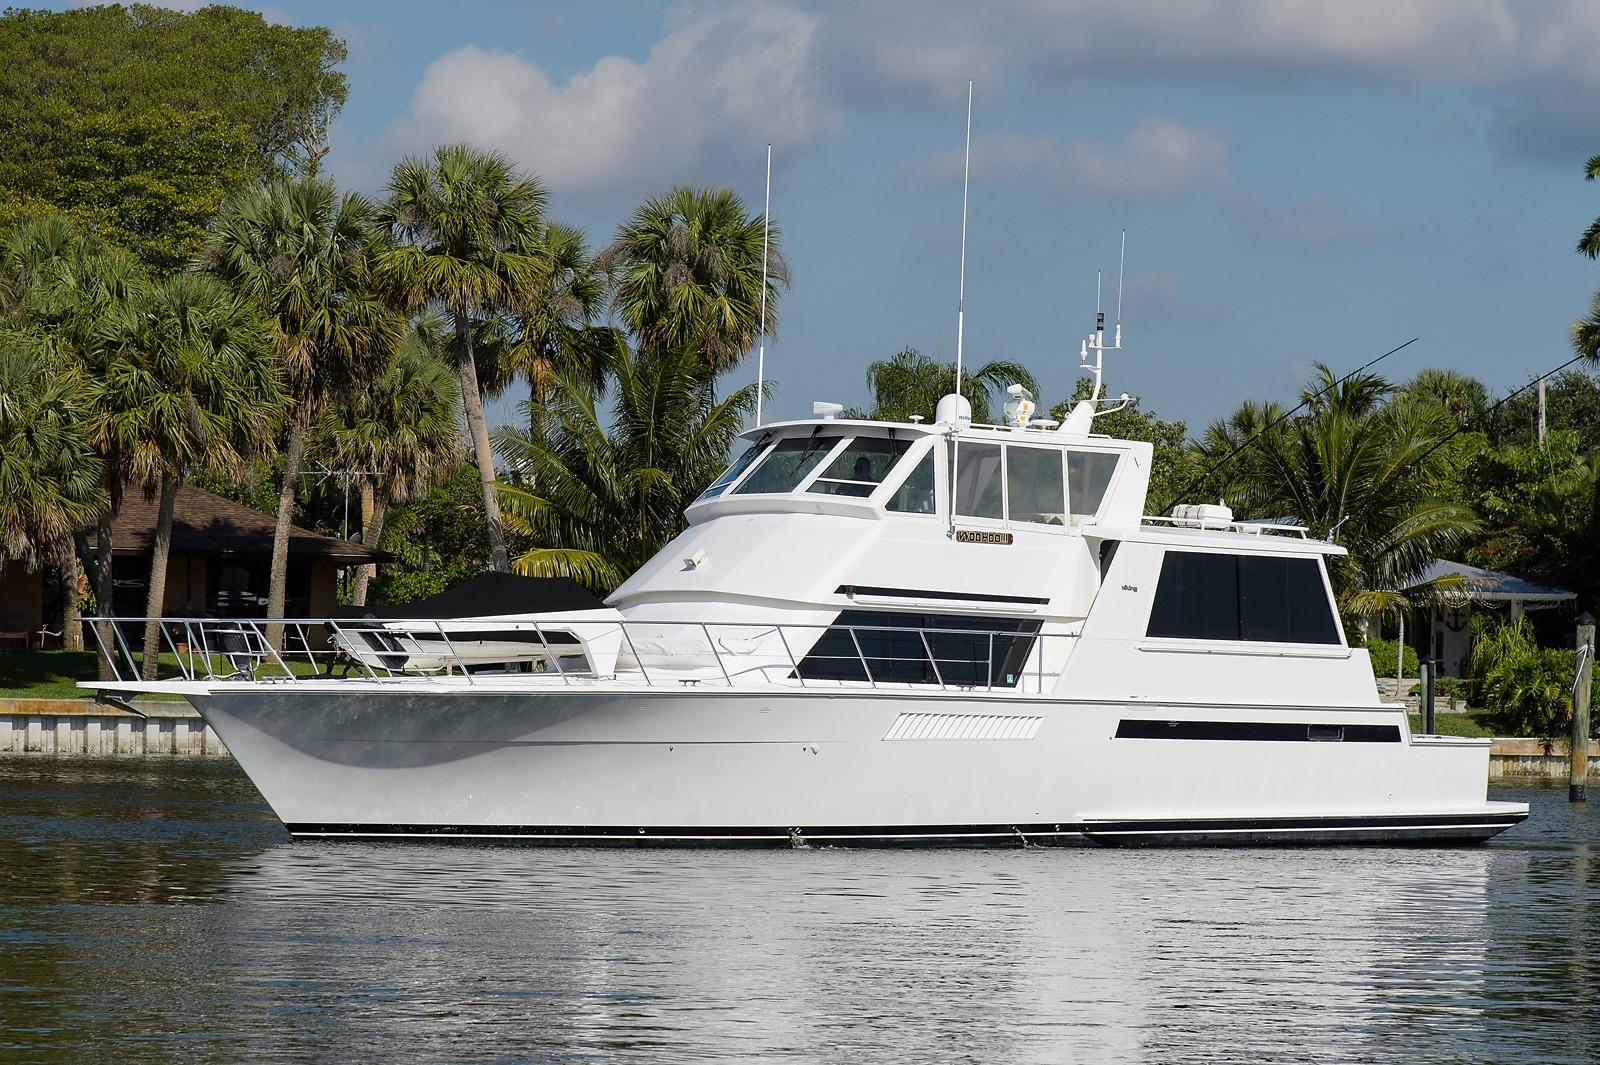 60 Viking Motor Yacht For Sale Of 60 Viking Boat 1997 Woo Hoo For Sale In Palm Beach